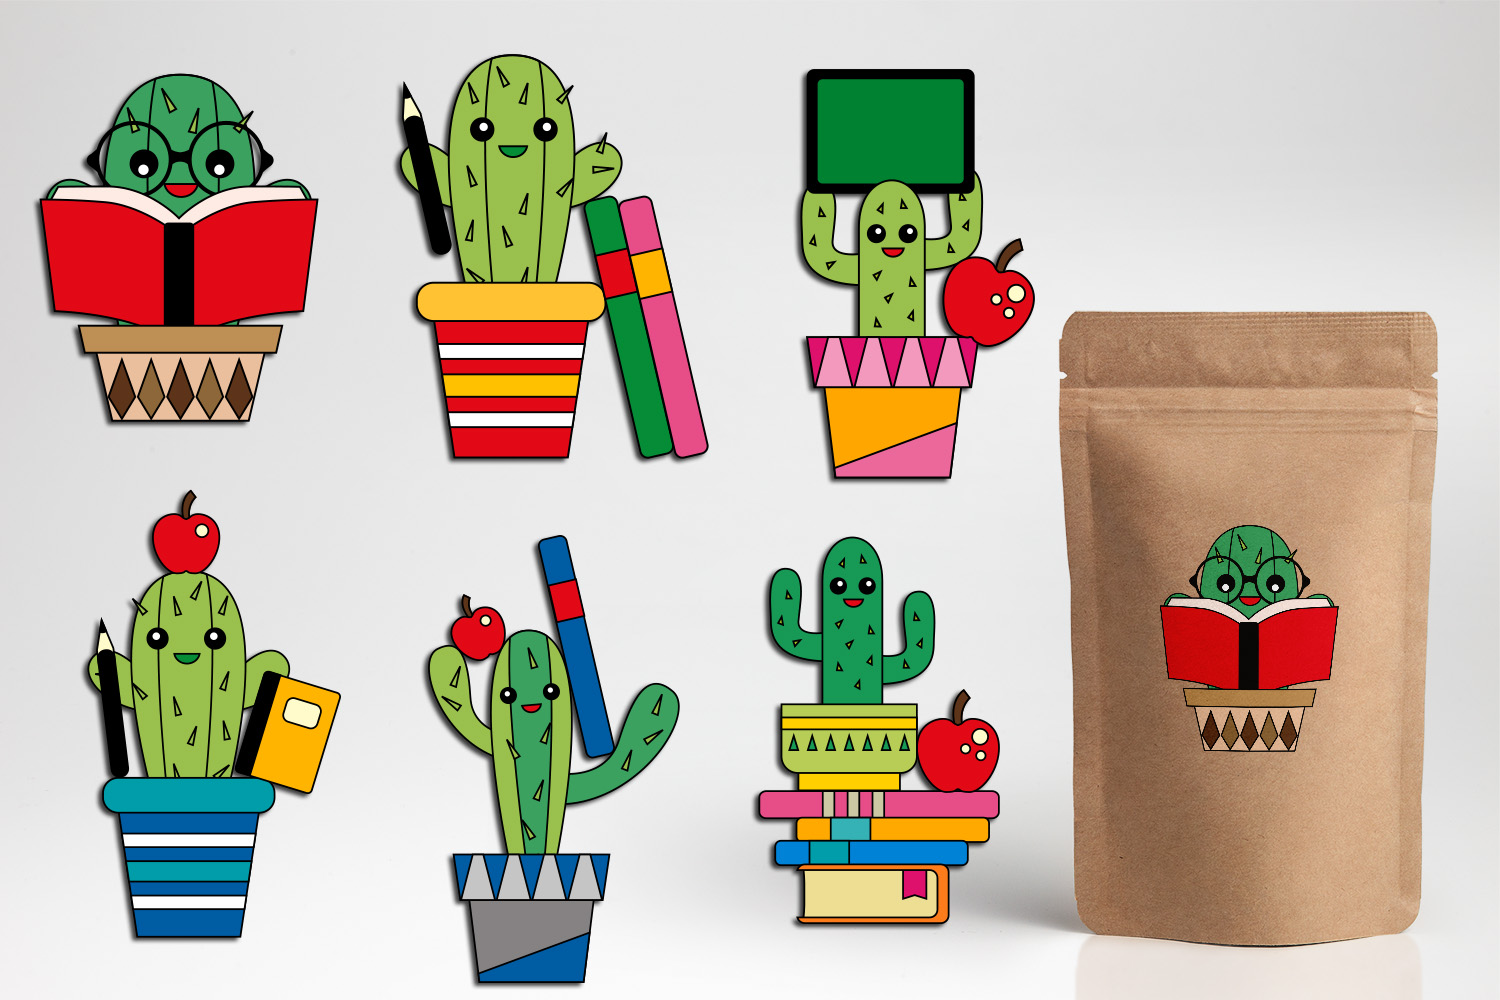 Download Free Back To School Cactus Graphic By Darrakadisha Creative Fabrica for Cricut Explore, Silhouette and other cutting machines.